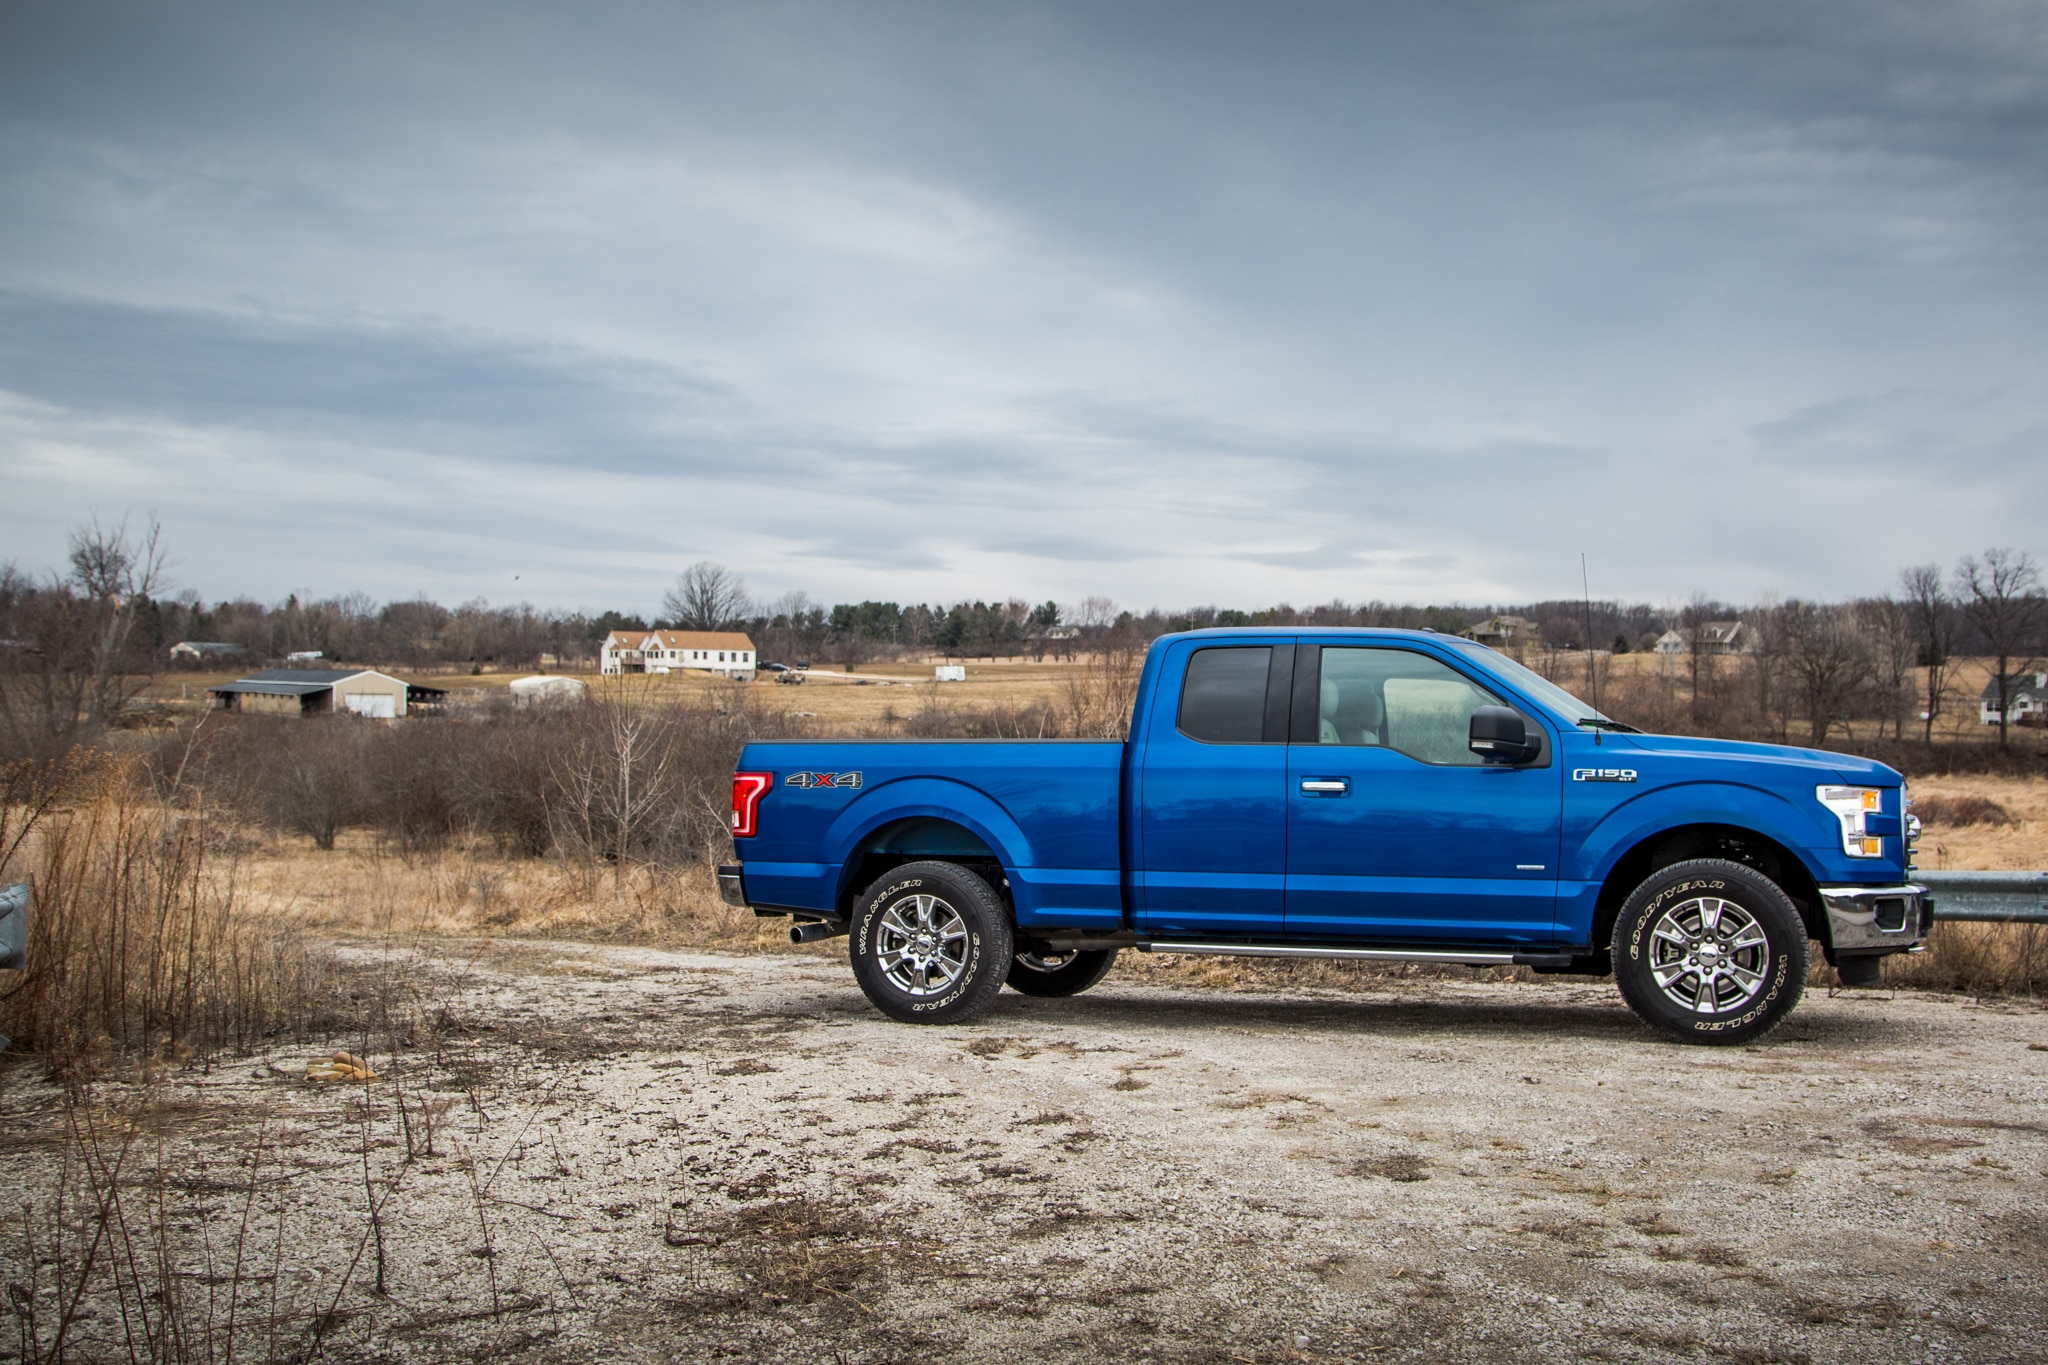 2016 Ford F150 Lifted >> Ford F-150 Crash Test Reveals Major Safety Gap Between ...